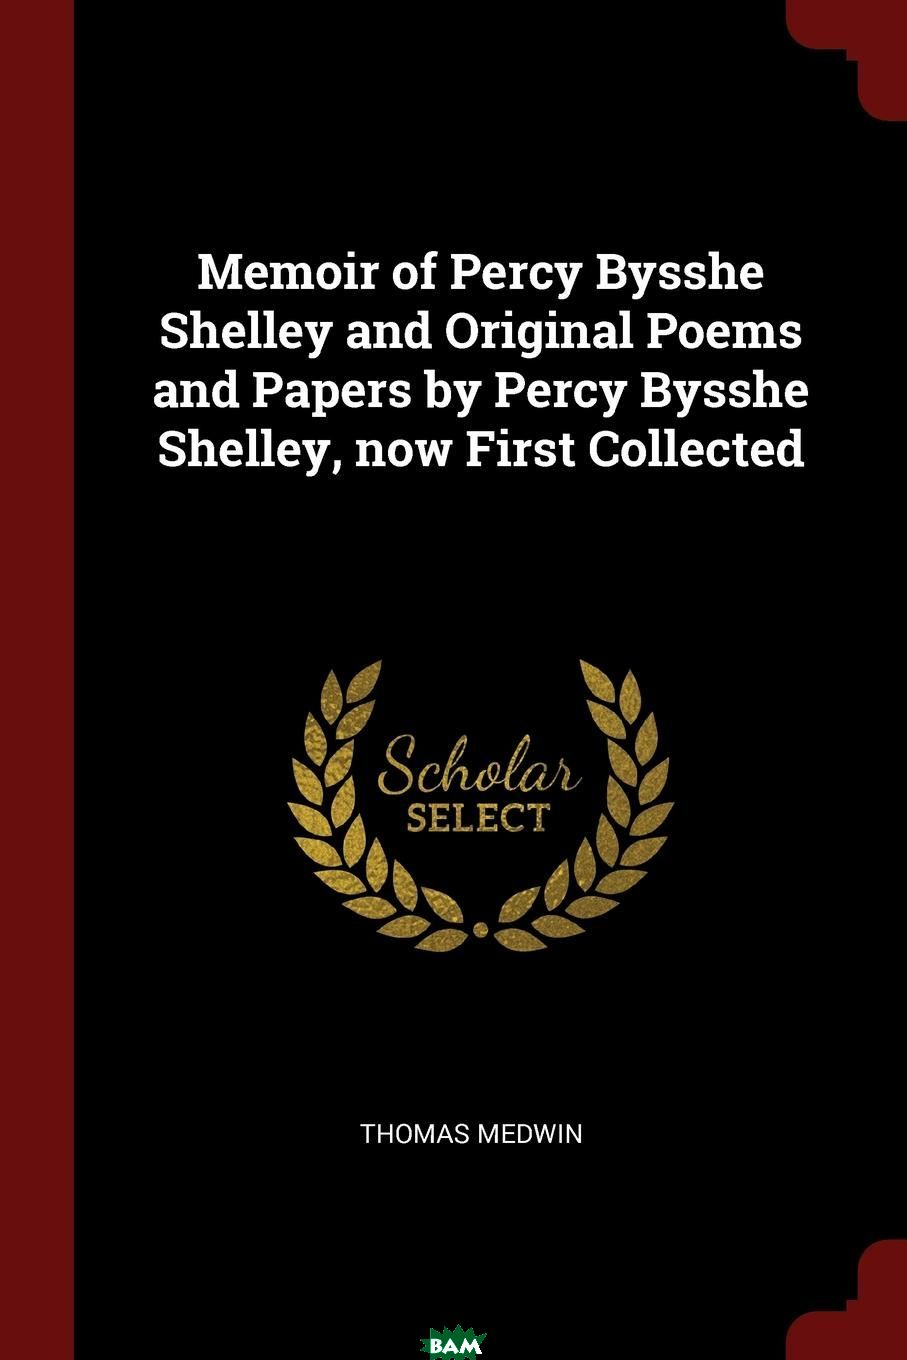 Купить Memoir of Percy Bysshe Shelley and Original Poems and Papers by Percy Bysshe Shelley, now First Collected, Thomas Medwin, 9781375950251